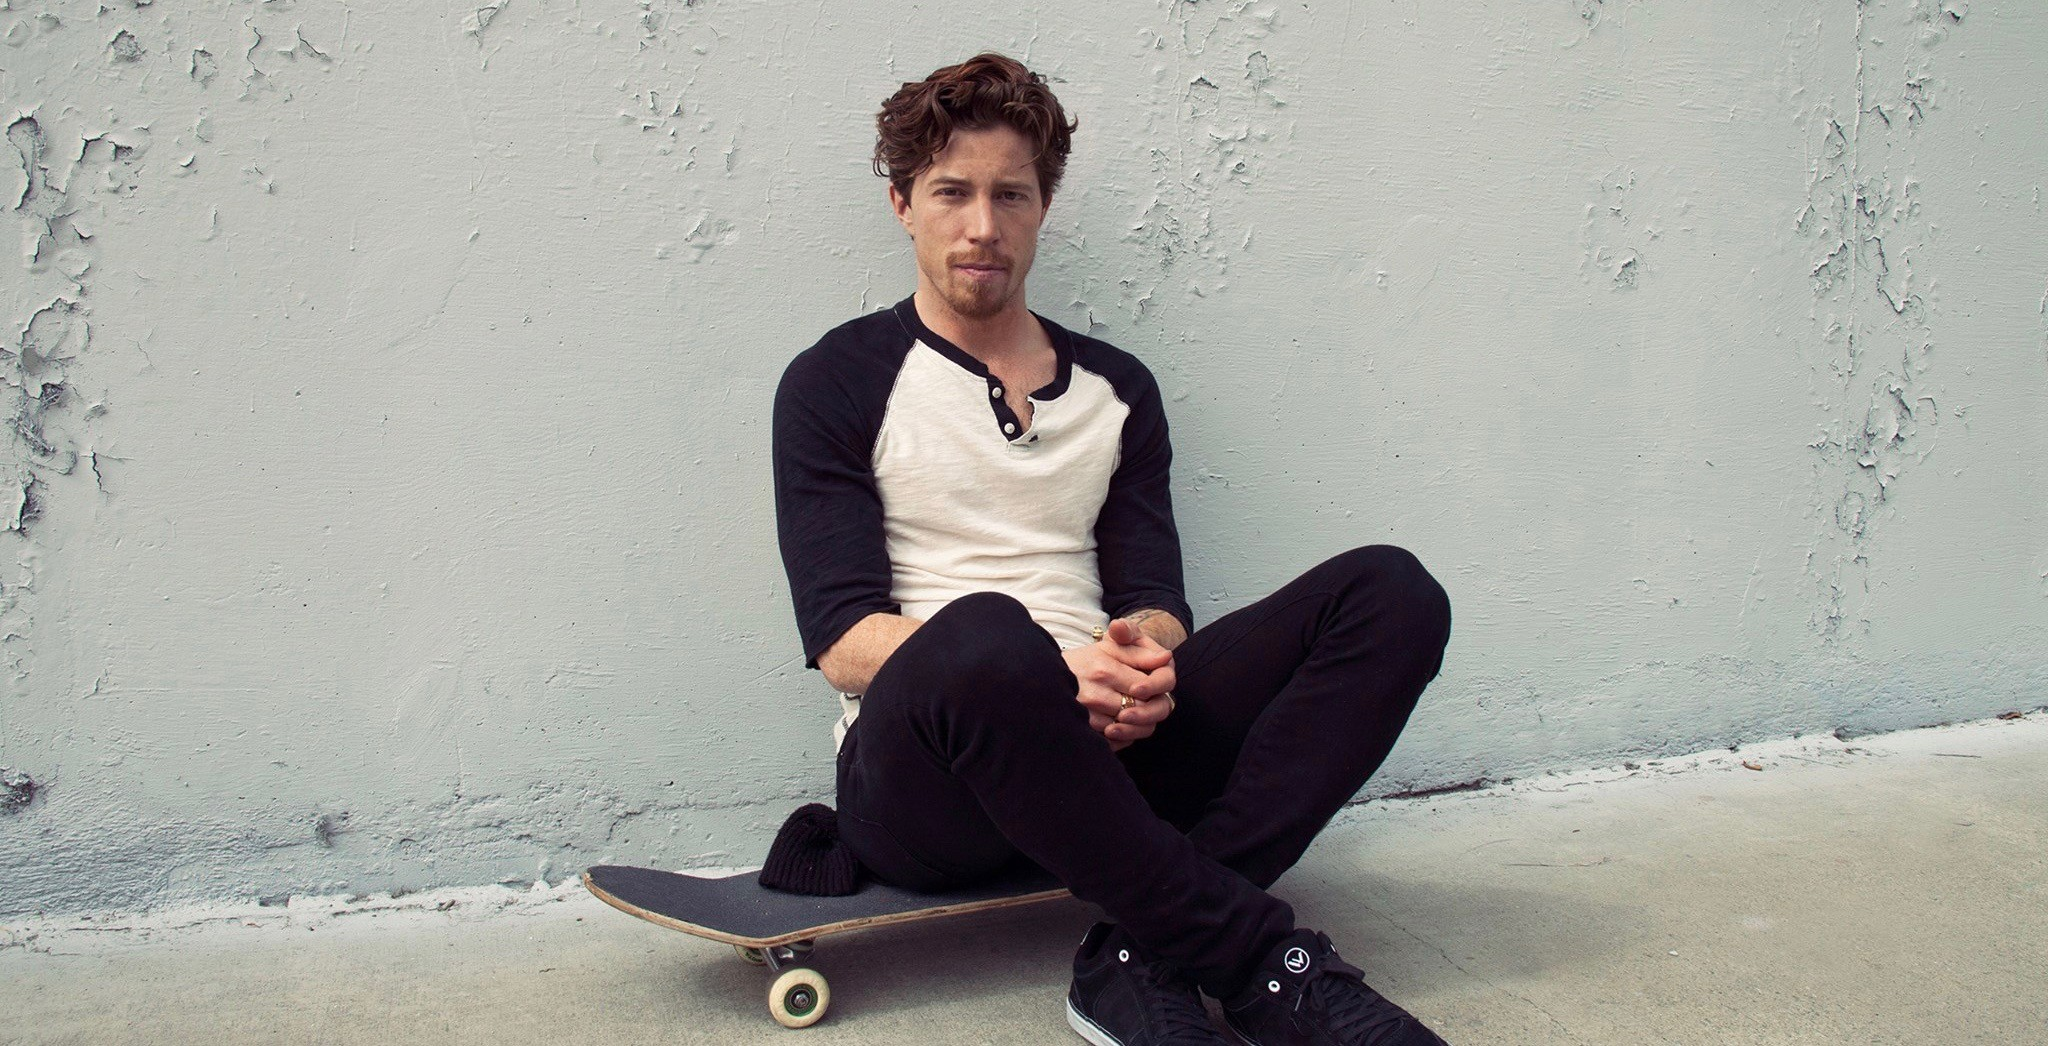 Shaun White to compete at Vans Park Series in Vancouver this week